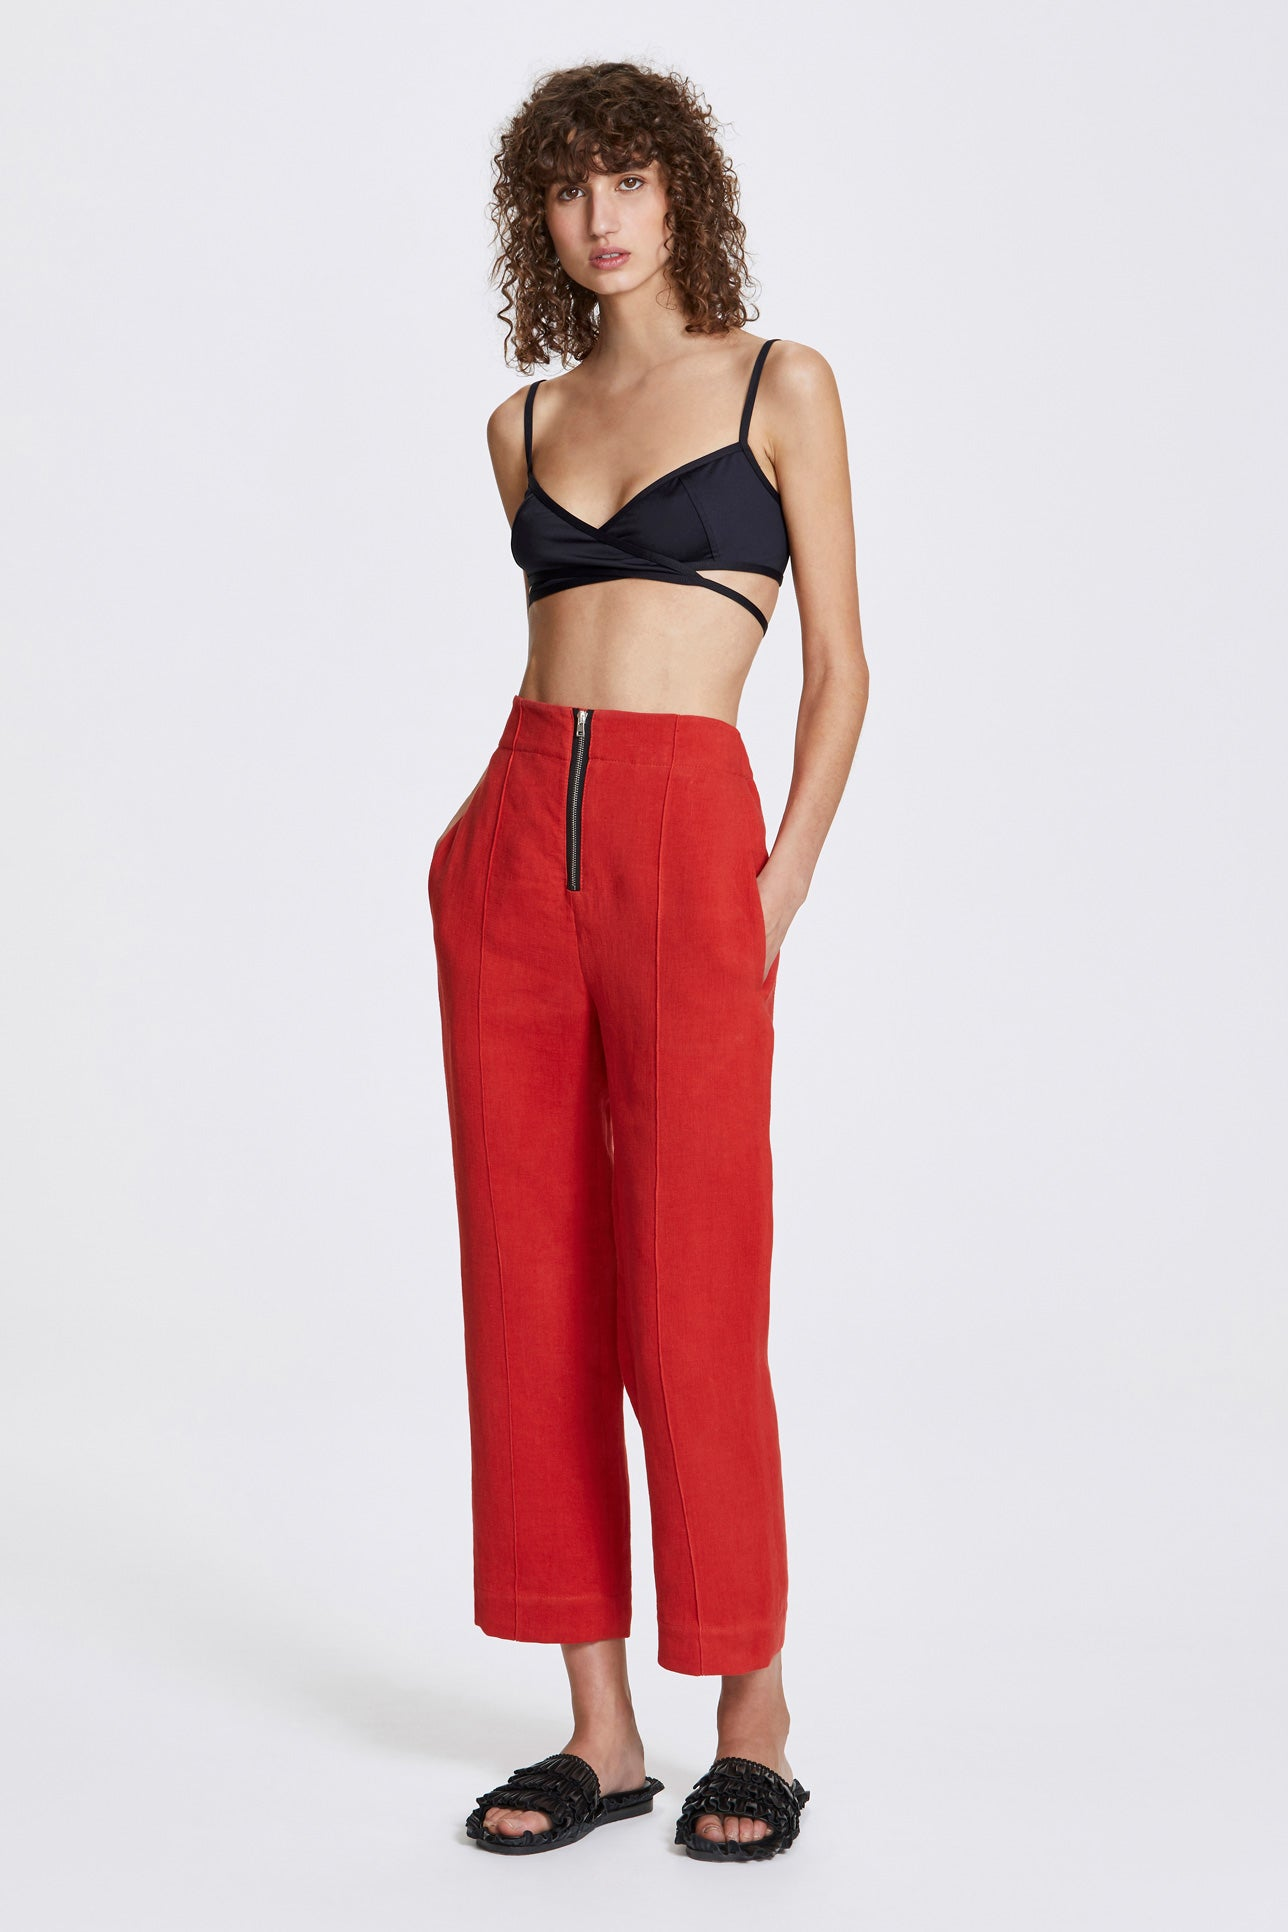 Exposed cropped leg trousers - Heavy linen - Lava red - Resortwear trouser - Her Line